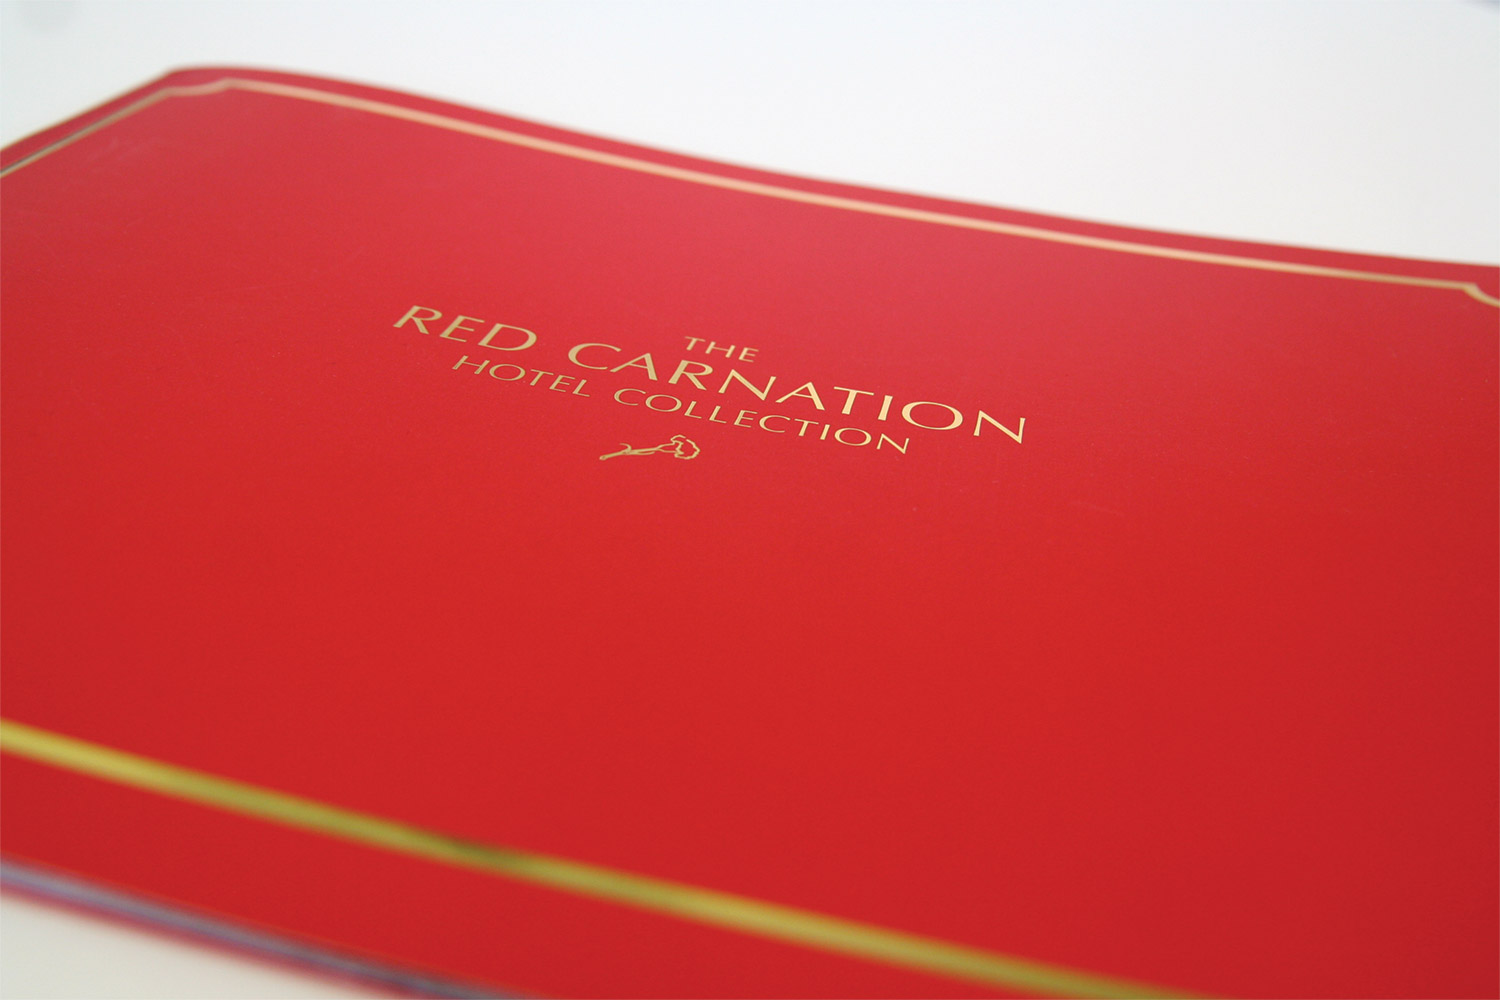 2-rch-brochure-cover-1500x1000